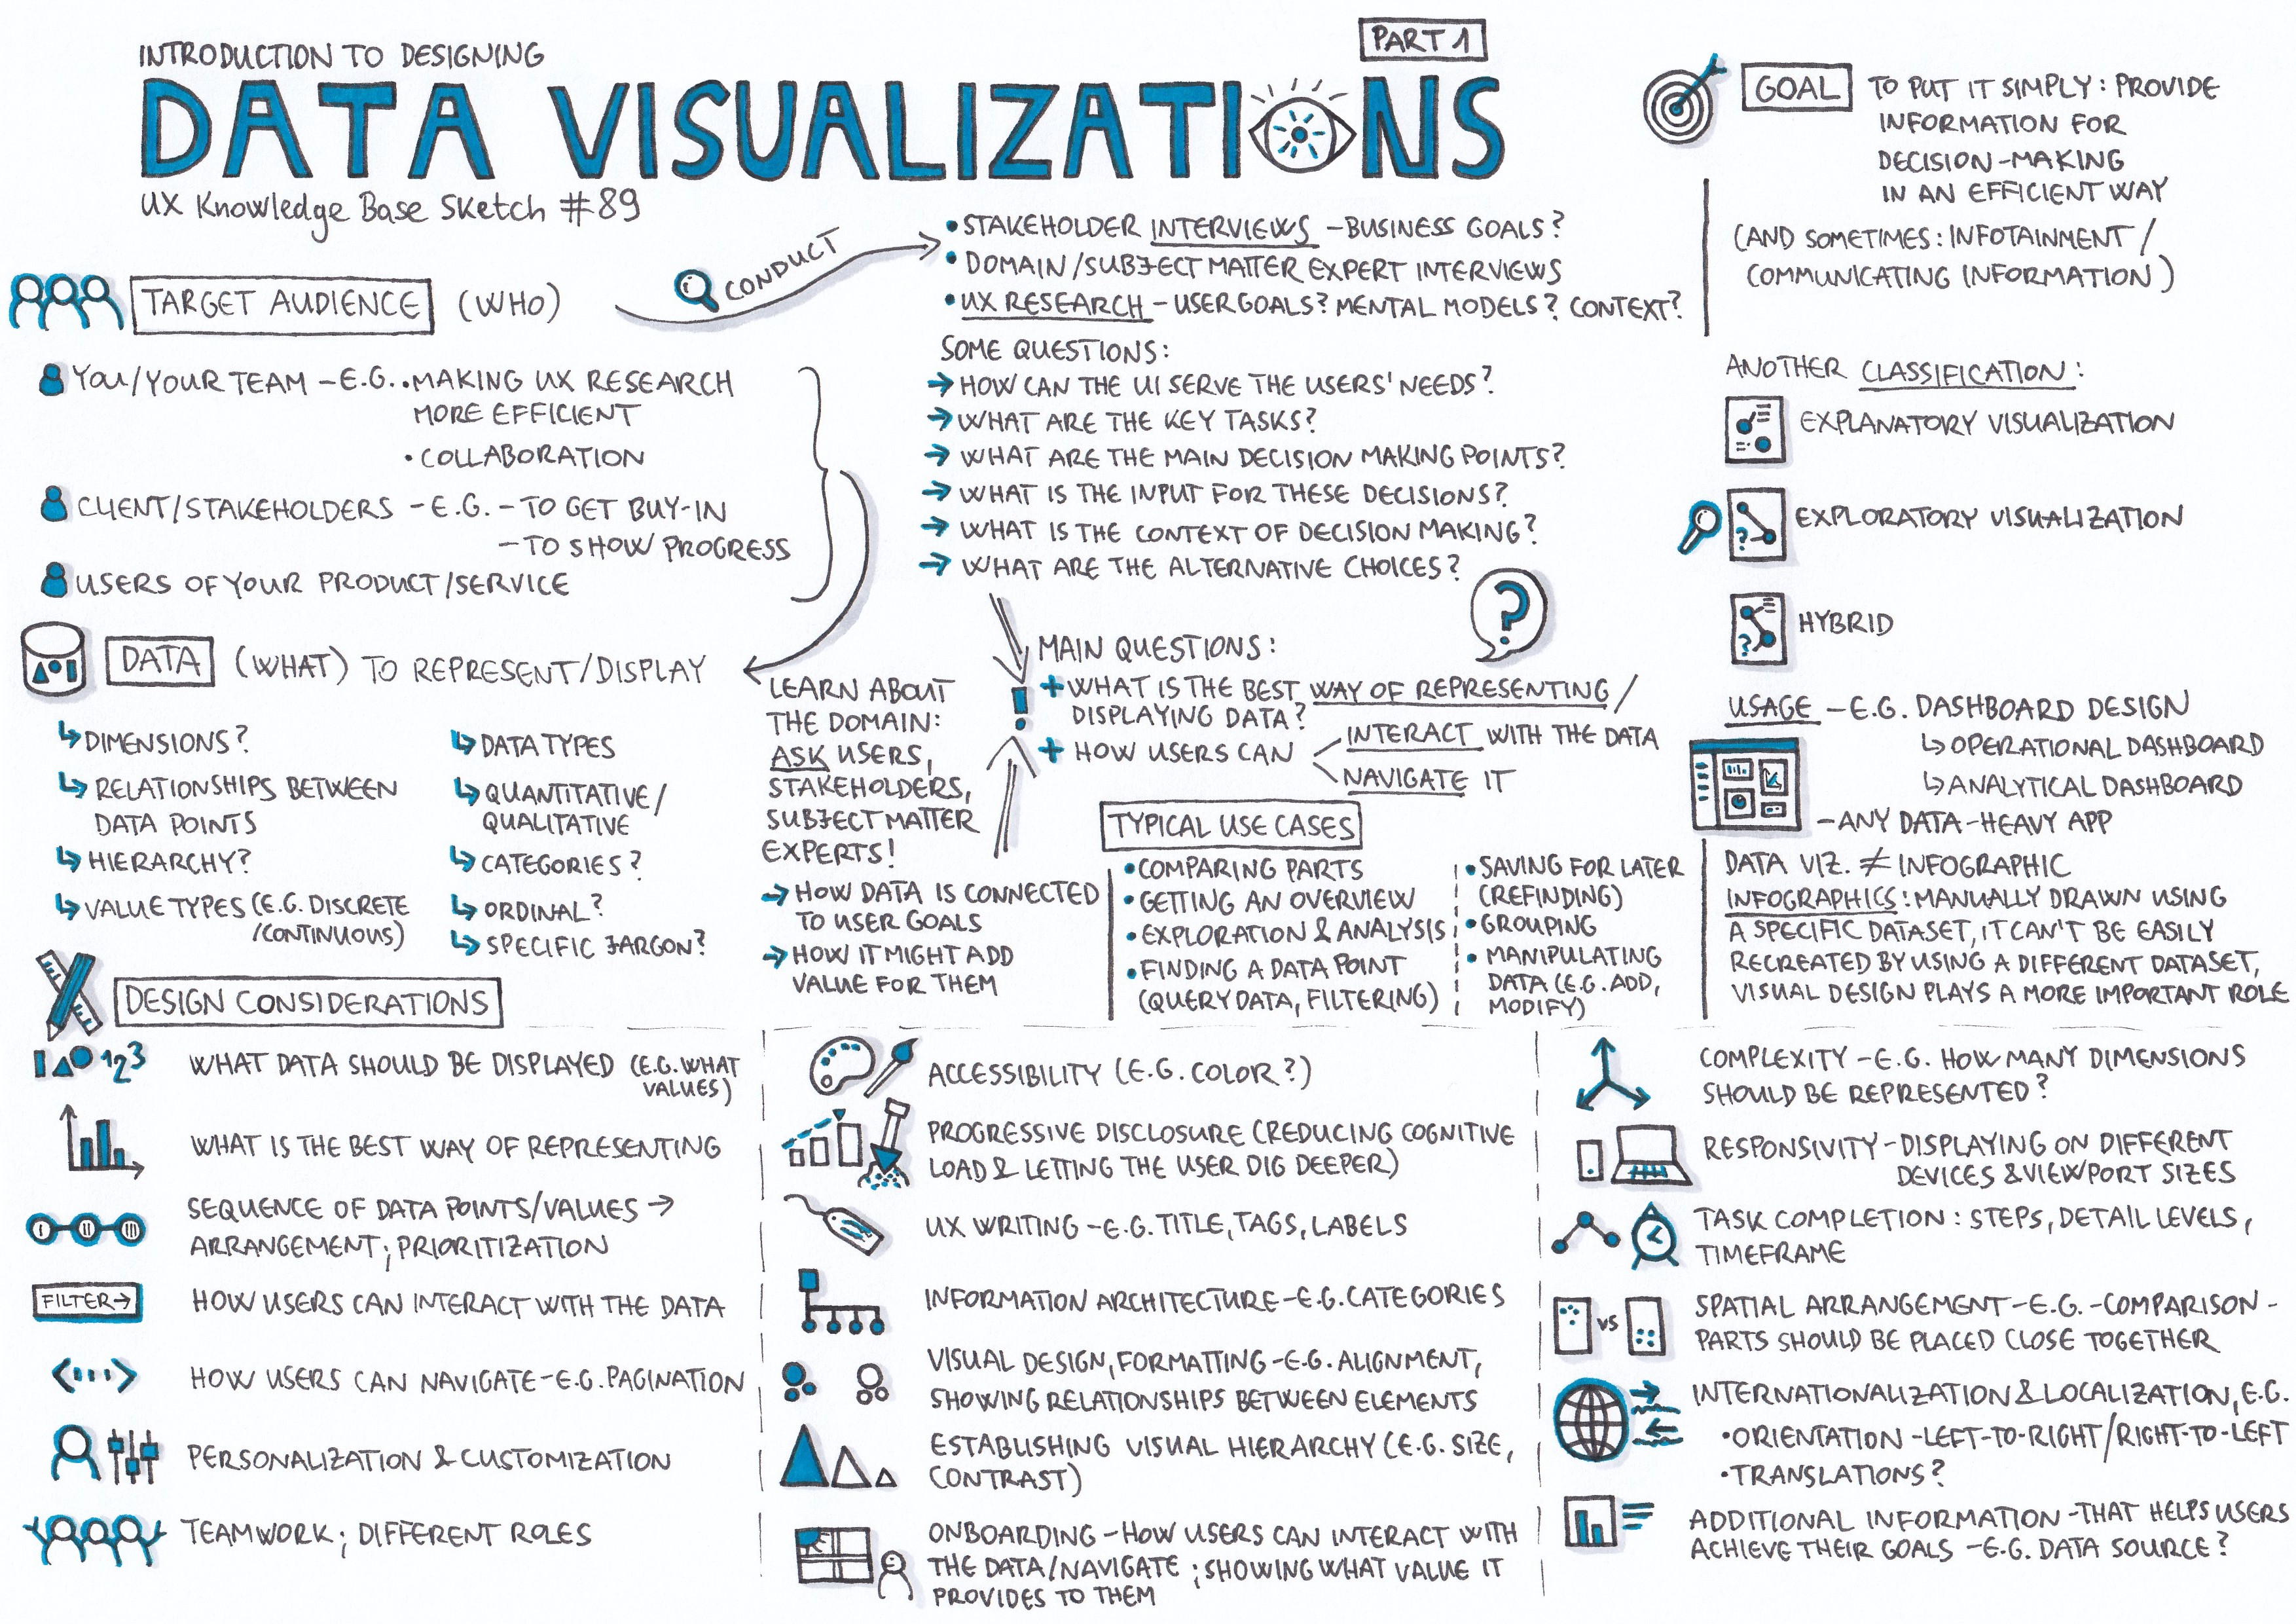 Introduction To Designing Data Visualizations Part 1 By Krisztina Szerovay Ux Knowledge Base Sketch